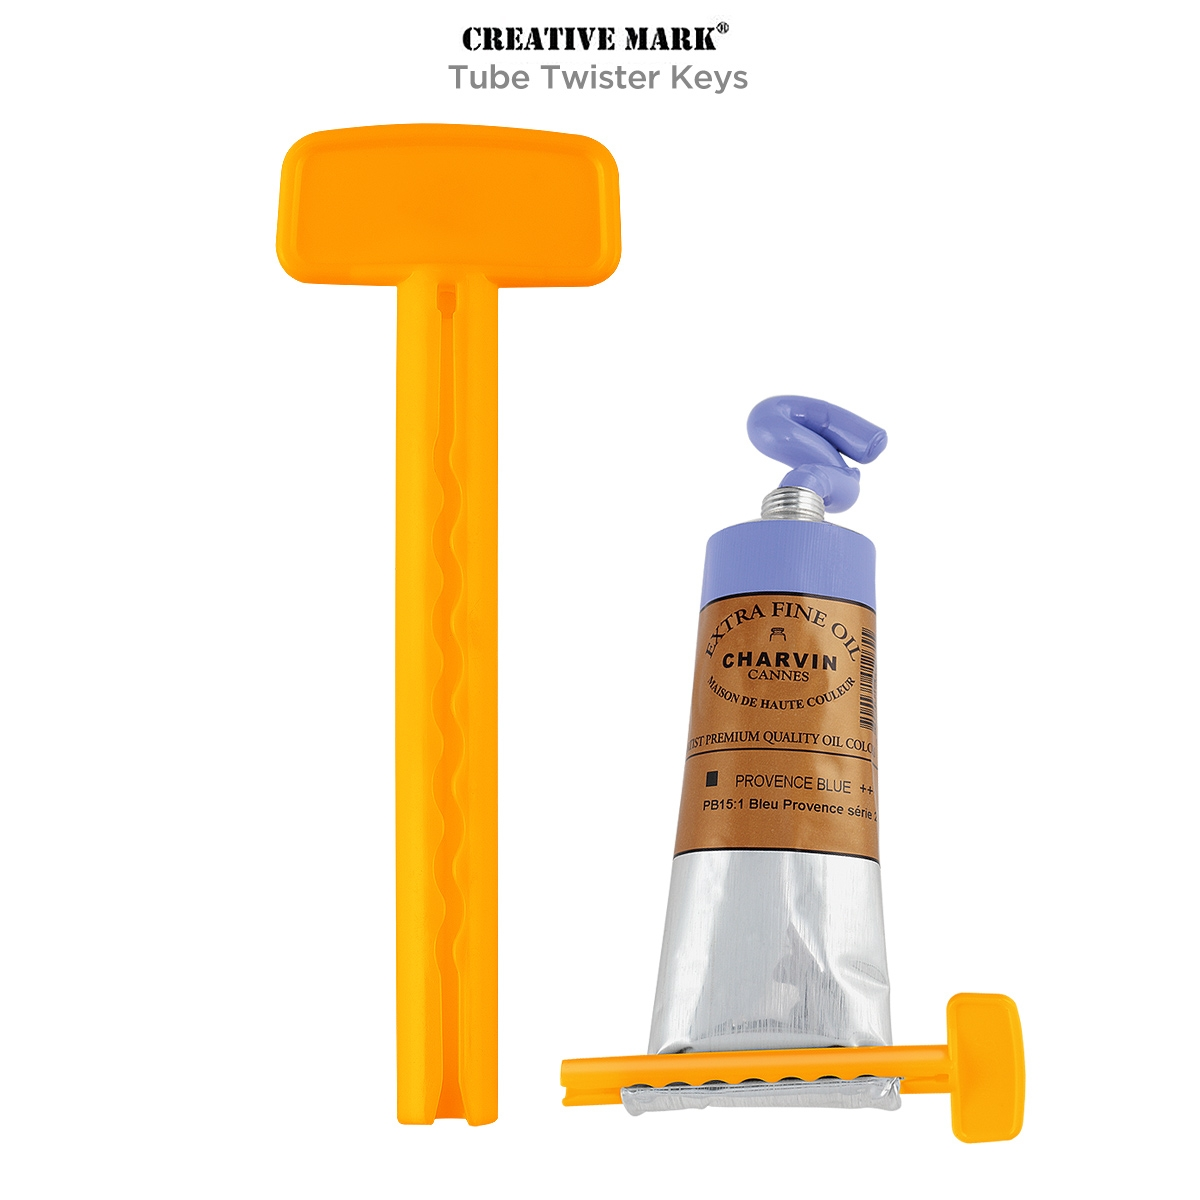 Universal Tube Twister Keys by Creative Mark